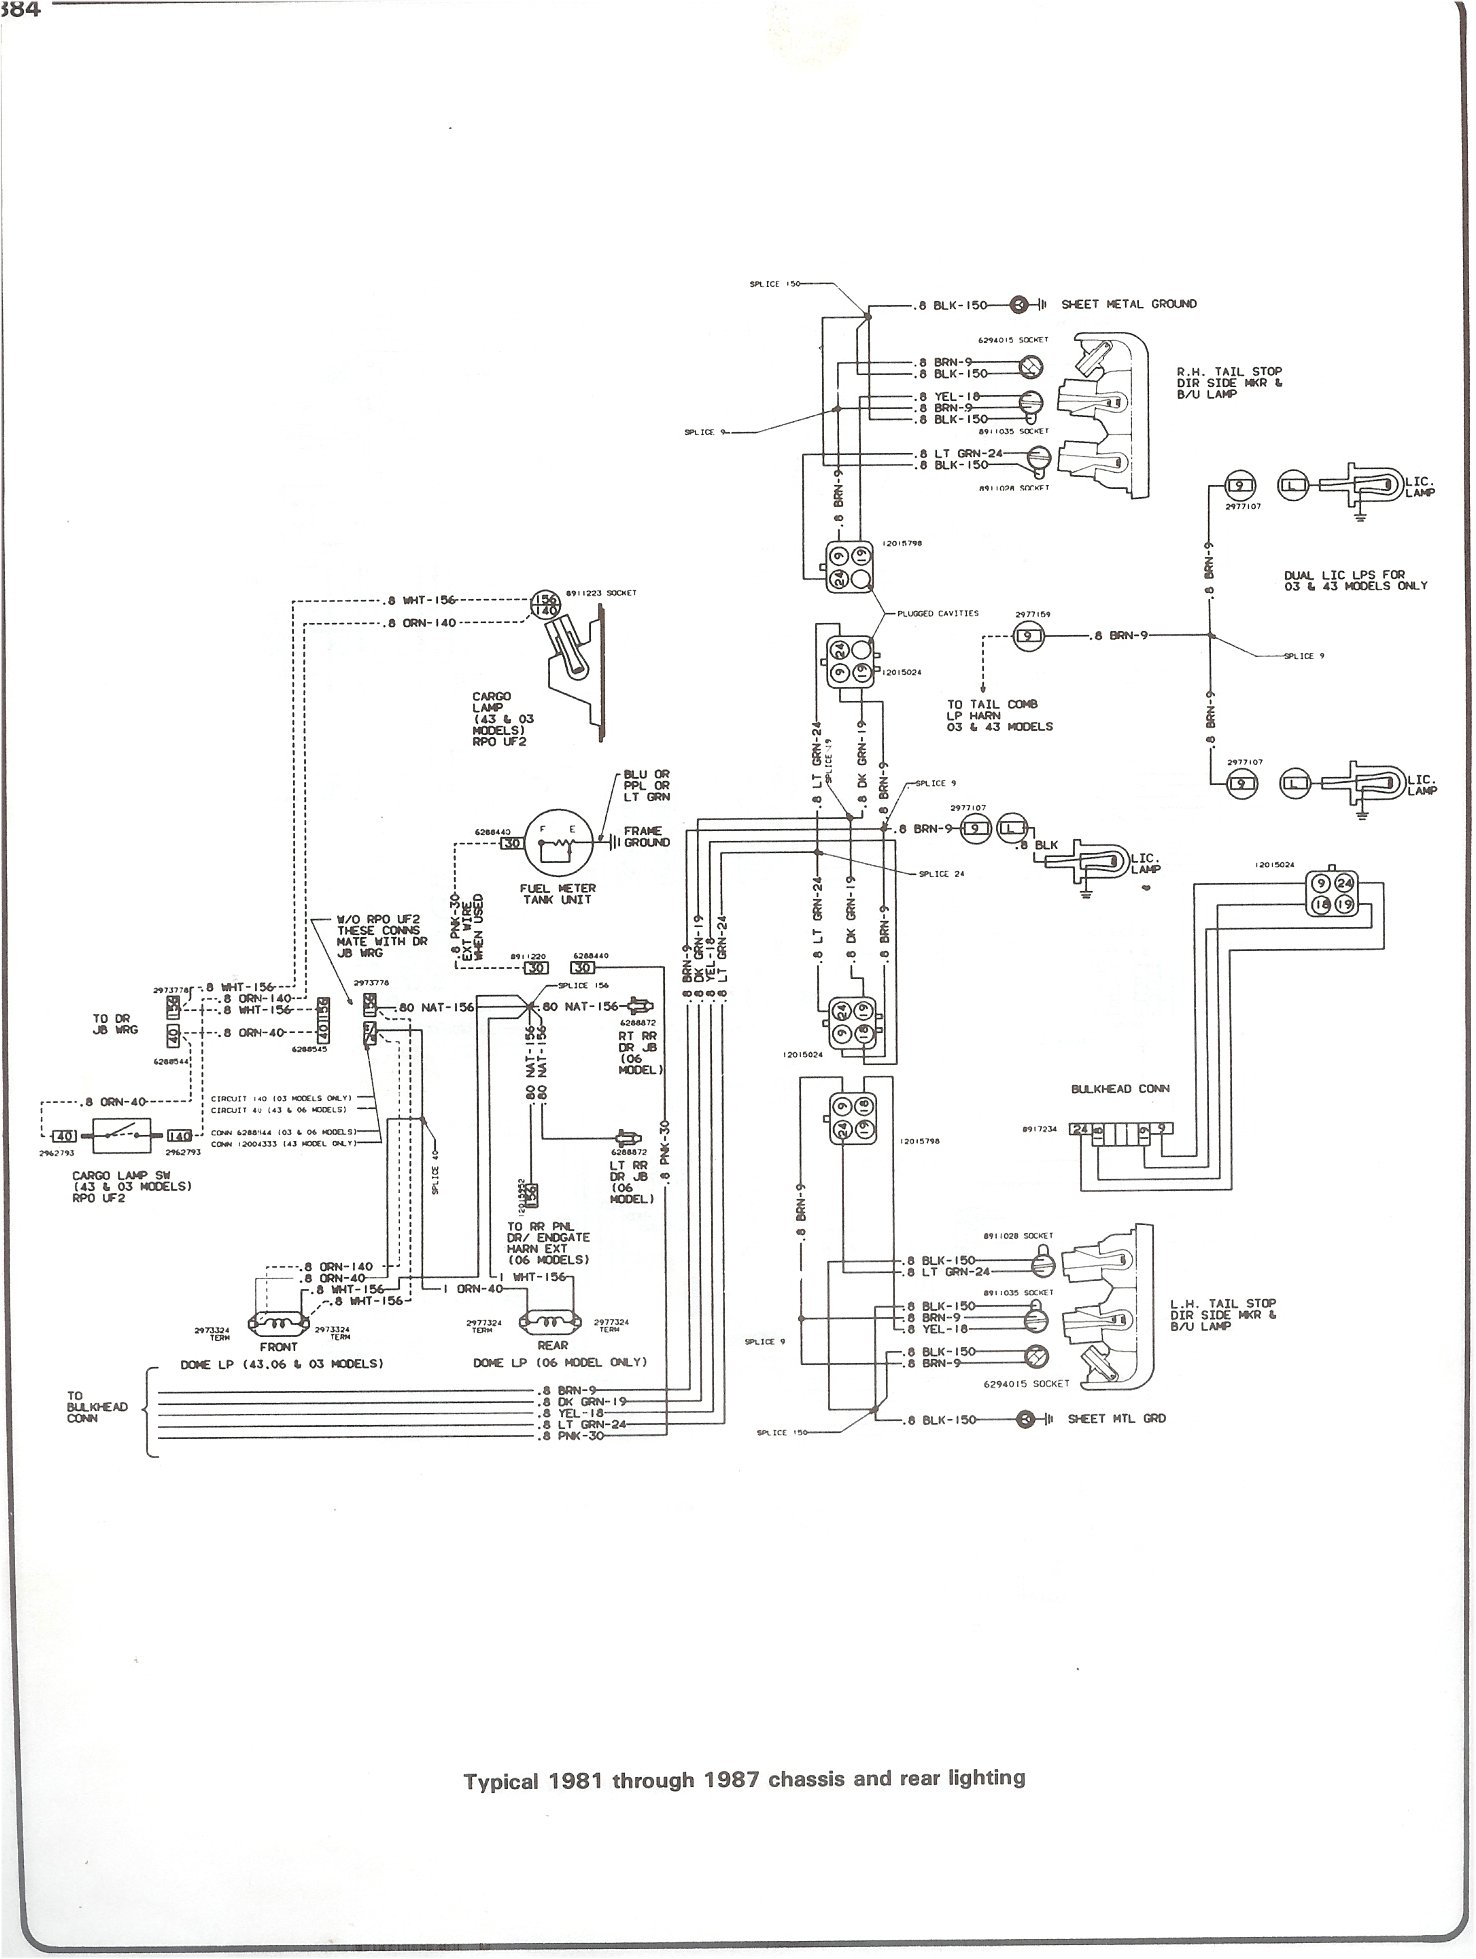 P0340 Jeep also 6tvdp Chevrolet 1500 Silverado Chevy Silverado Not Starting No Power also Lmm Duramax Glow Plug Control Module Wiring further Schematics i moreover Discussion D630 ds546768. on gmc wiring diagram